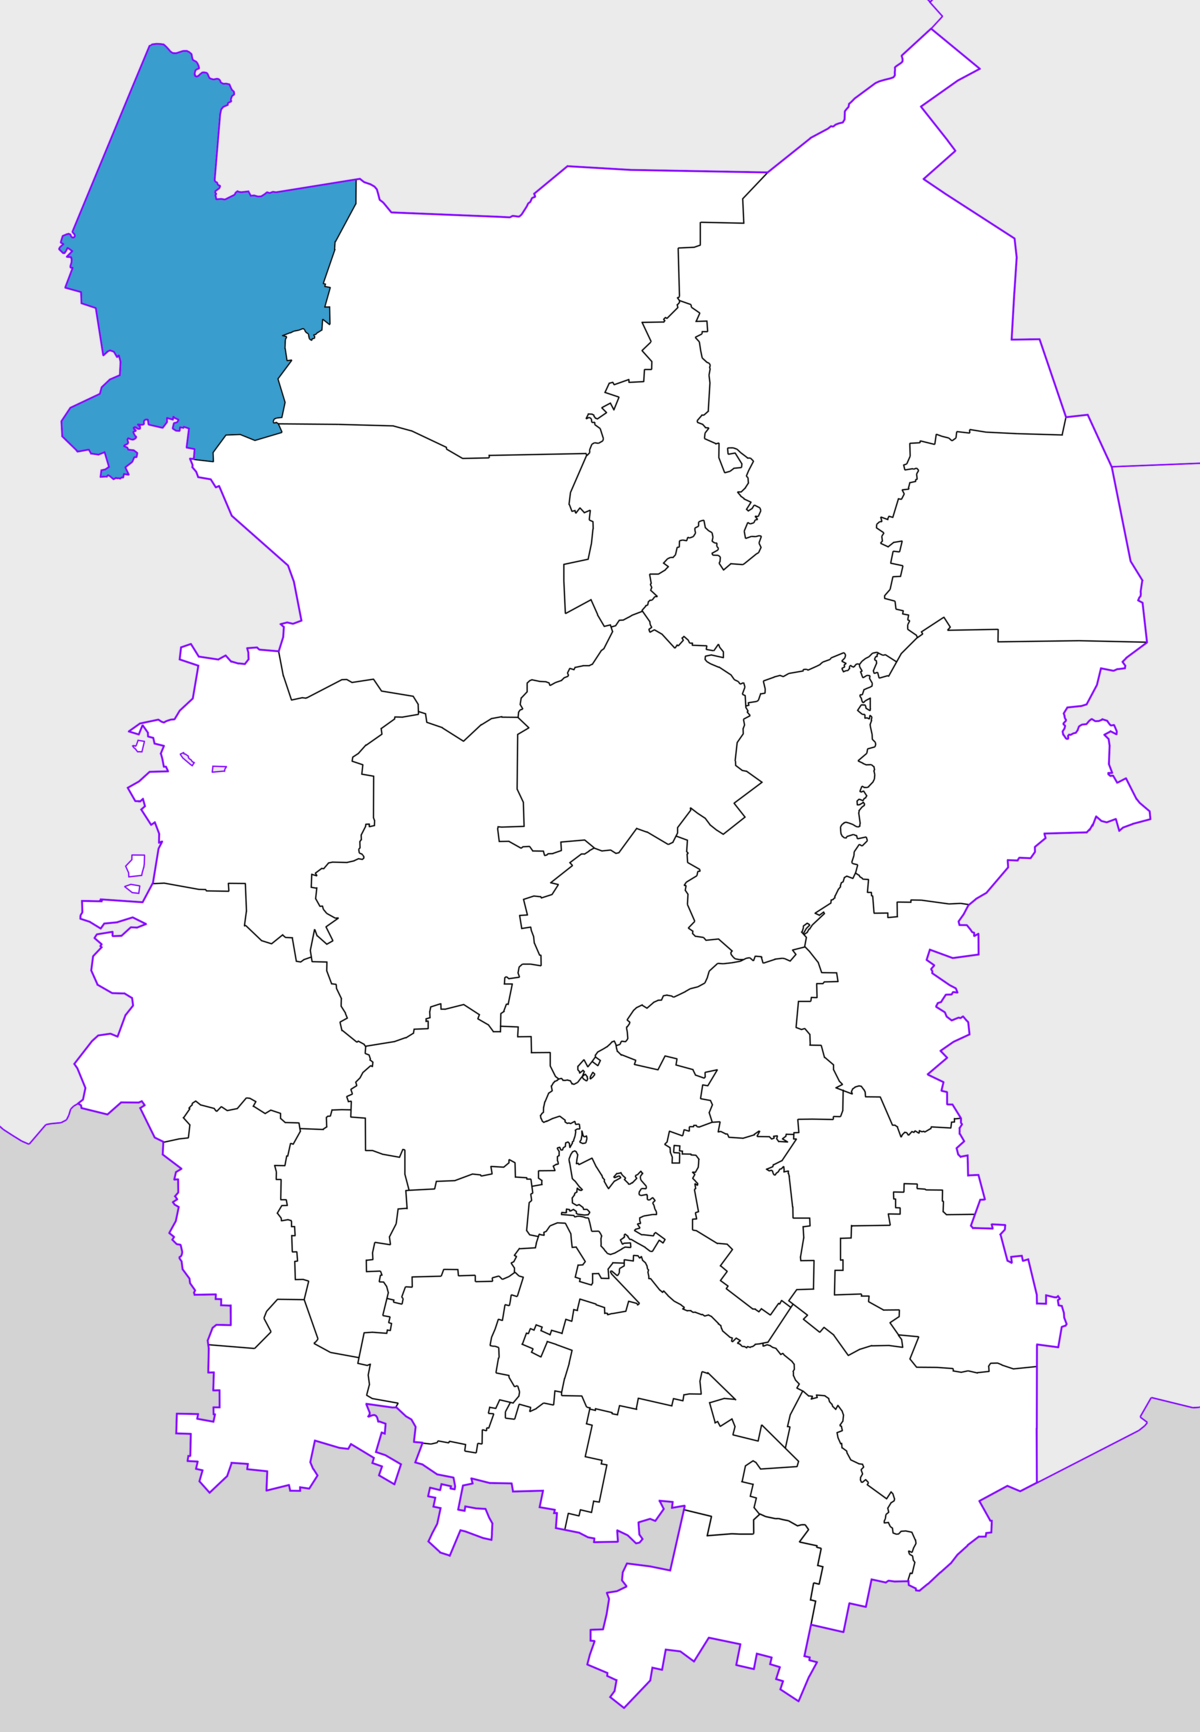 What is the federal district of Omsk, and where is it located 40